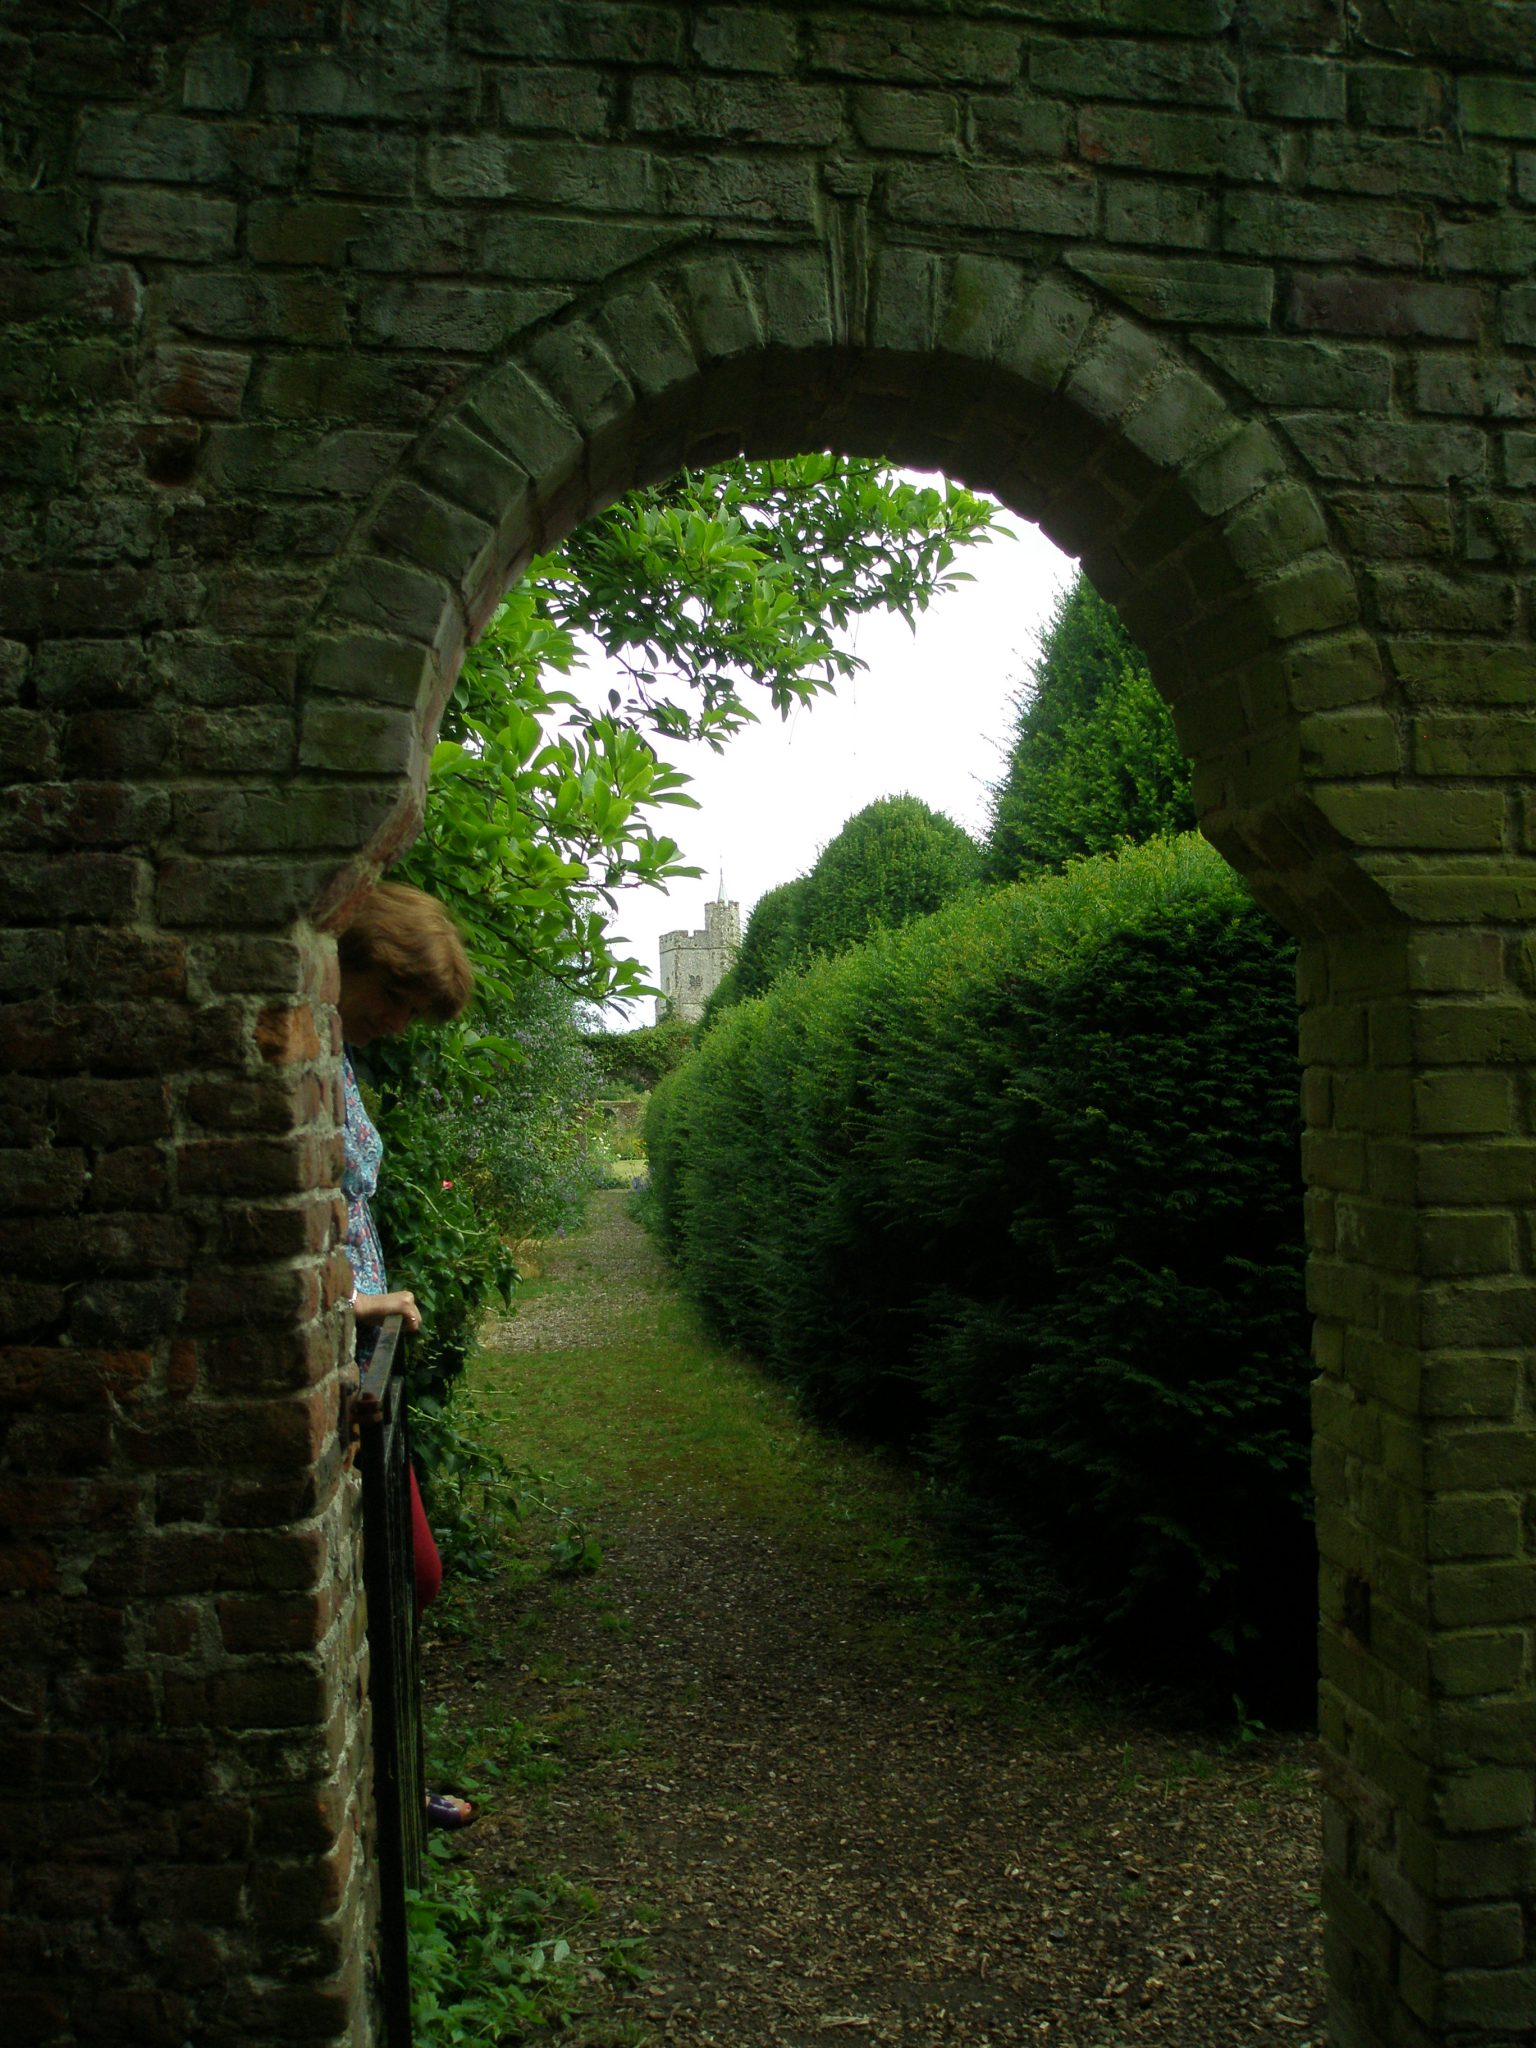 Nearby the Cedar of Lebanon is this archway, which leads to the Walled Garden. Amanda held open the gate, and smiled her little-cat-smile, as she waited to see my reaction to this glimpse of a distant, church tower.